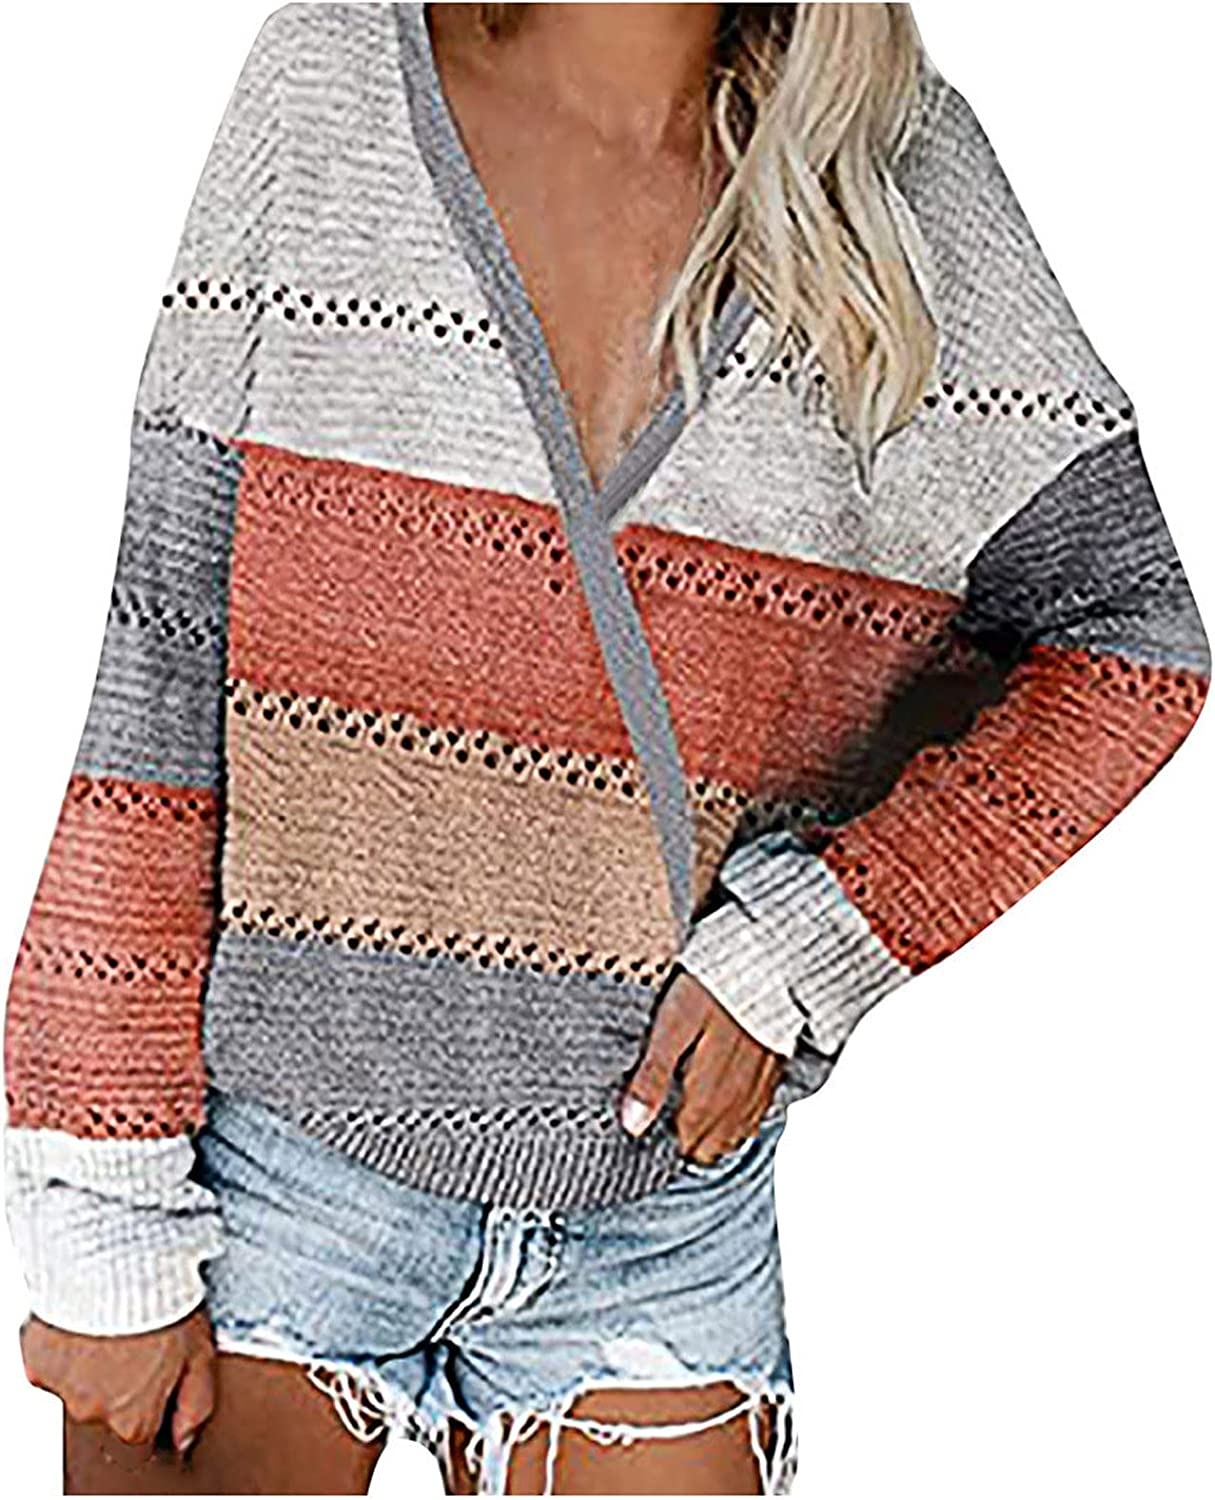 Sweaters for Women Striped Color Block Sweater Long Sleeve V Neck Casual Hollow Out Knit Pullover Tops